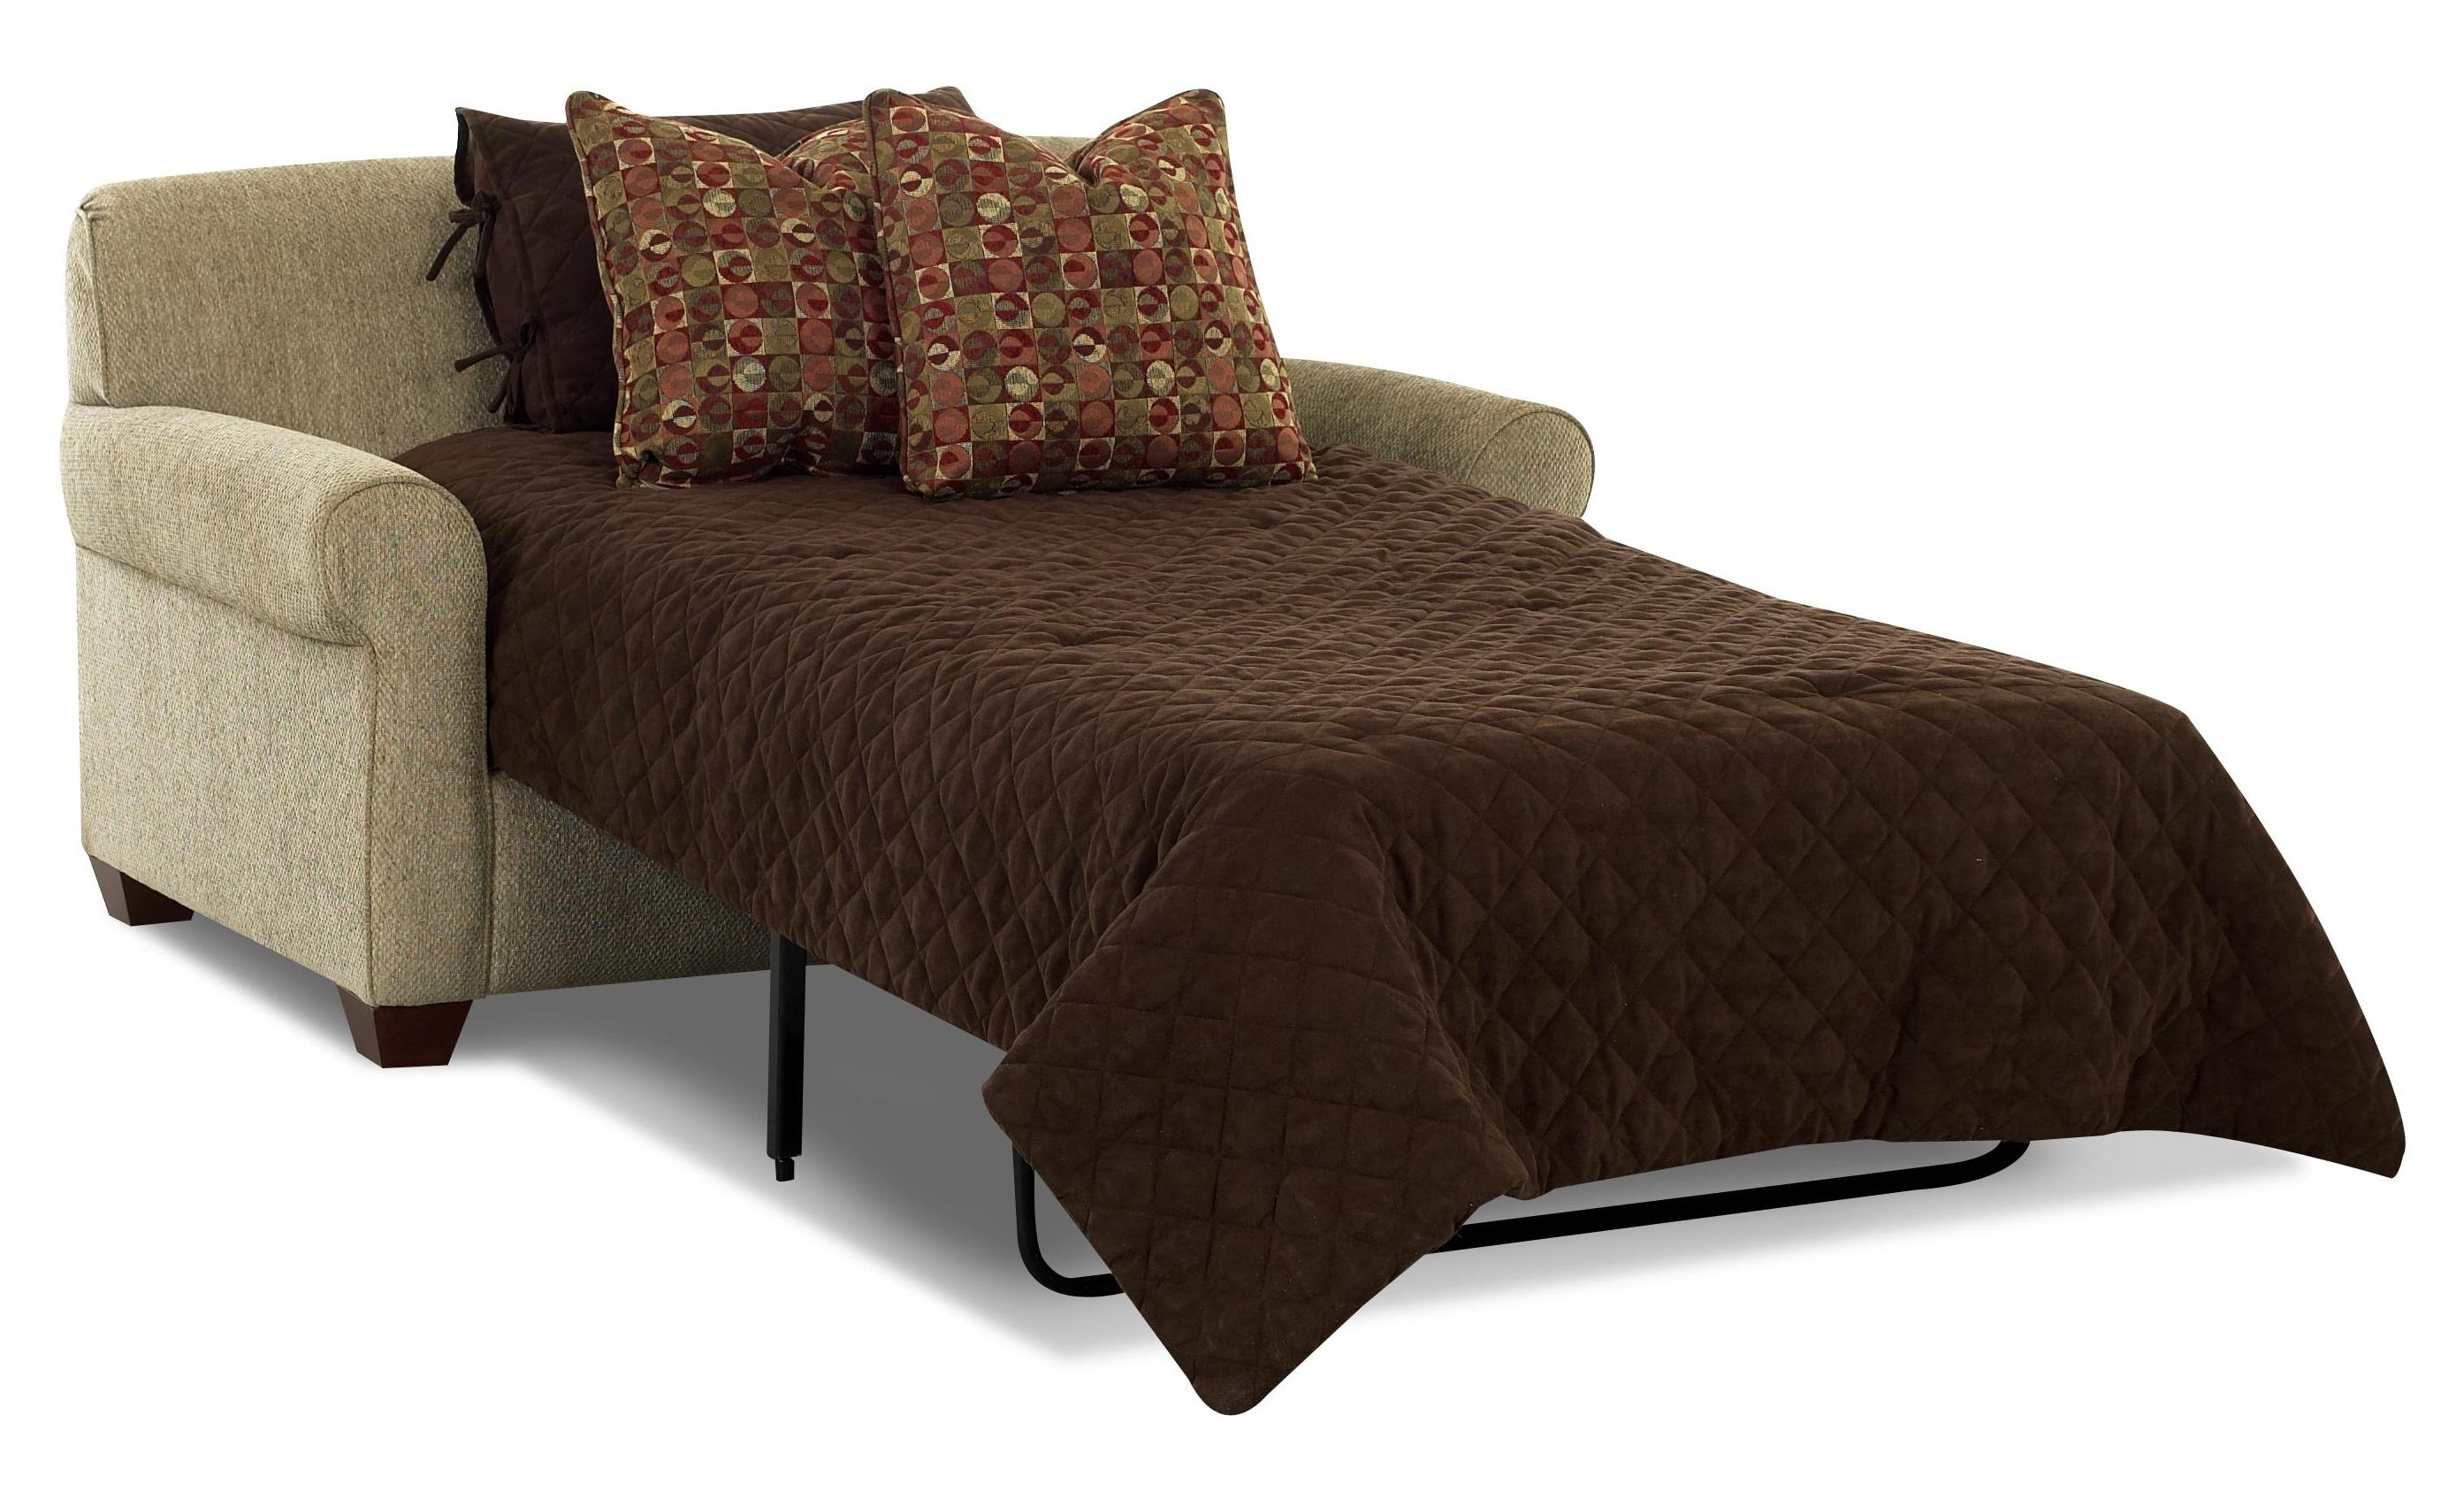 Image of: Sleeper Chair Bed Style